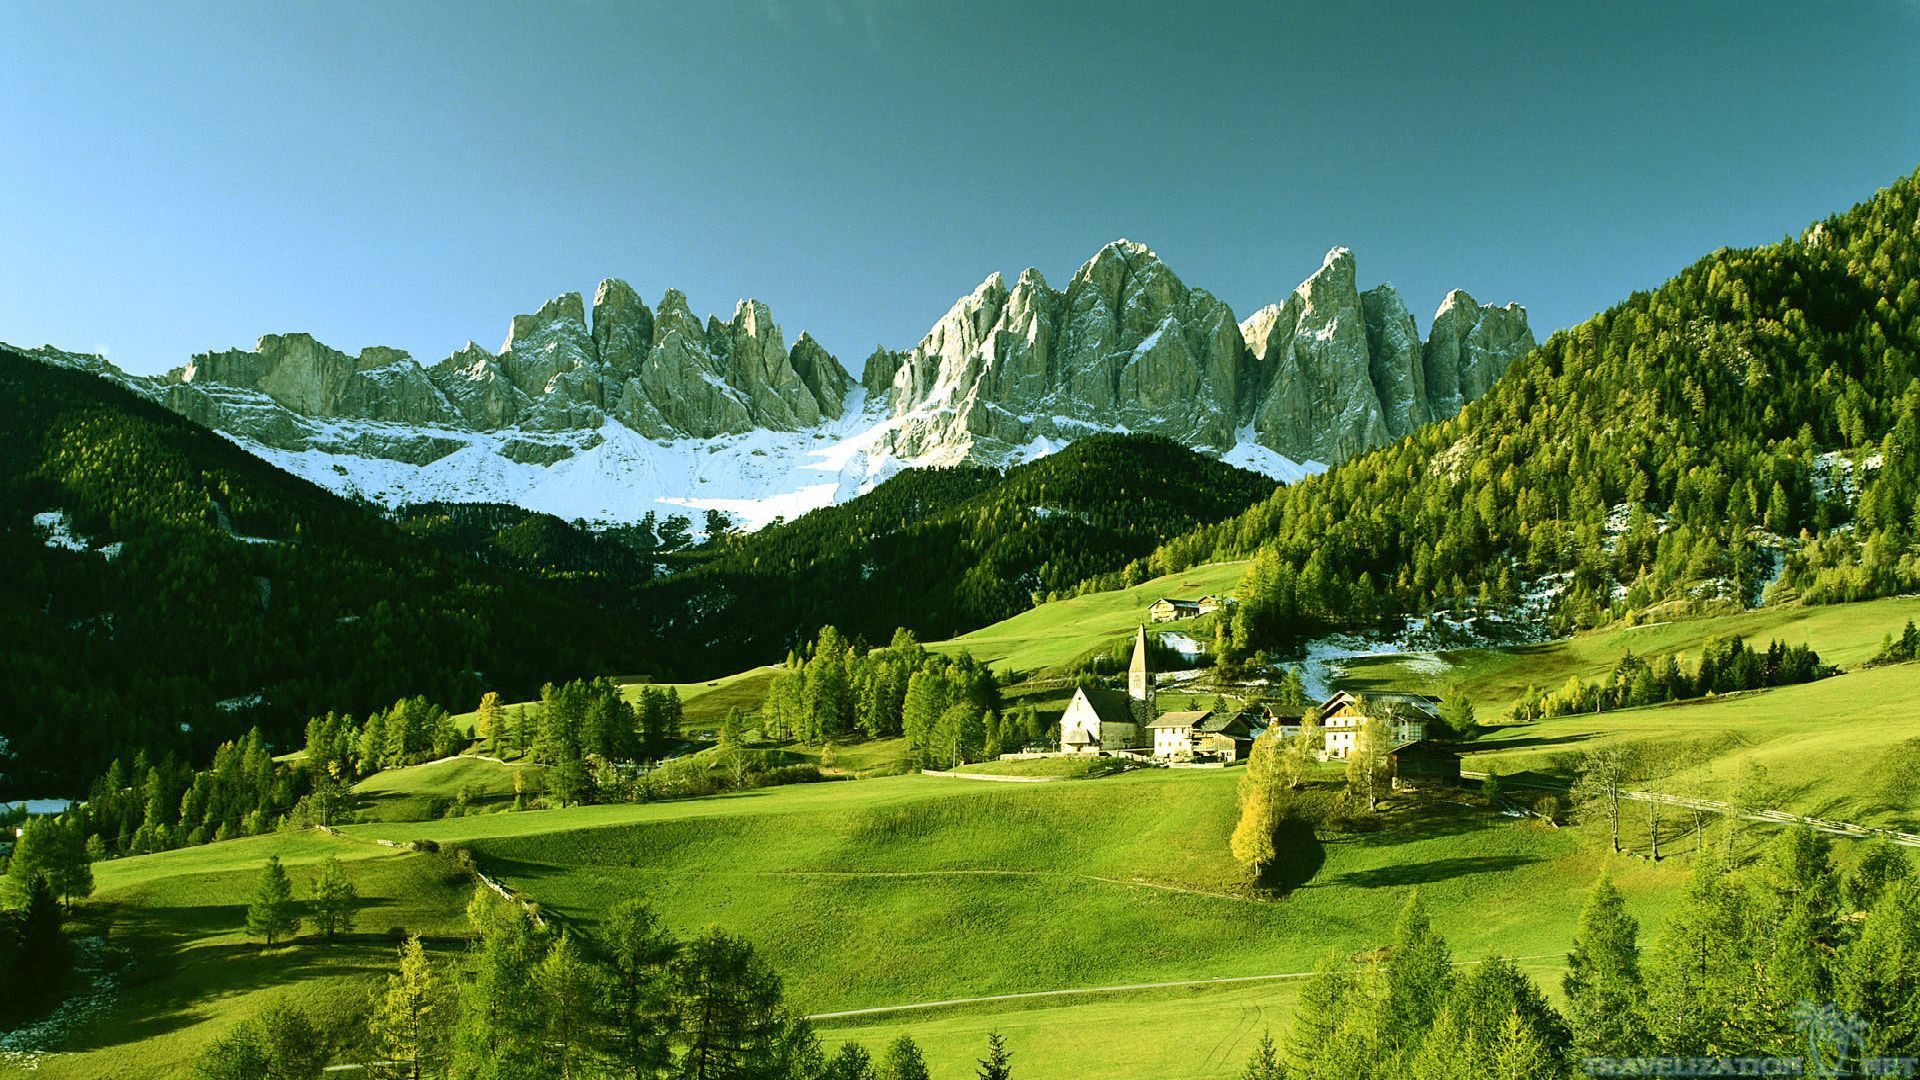 Best ideas about Beautiful Landscape Pictures . Save or Pin Laurie Raised by Teenagers Beautiful Landscape & Nature Now.